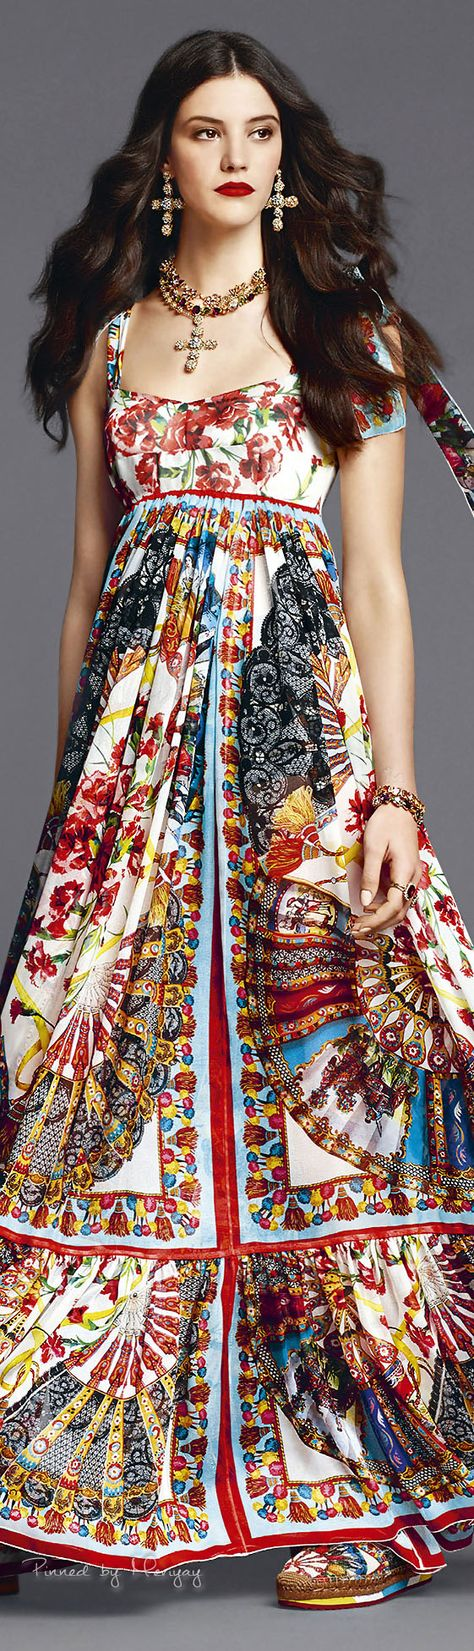 Dolce & Gabbana 2015 | The House of Beccaria~